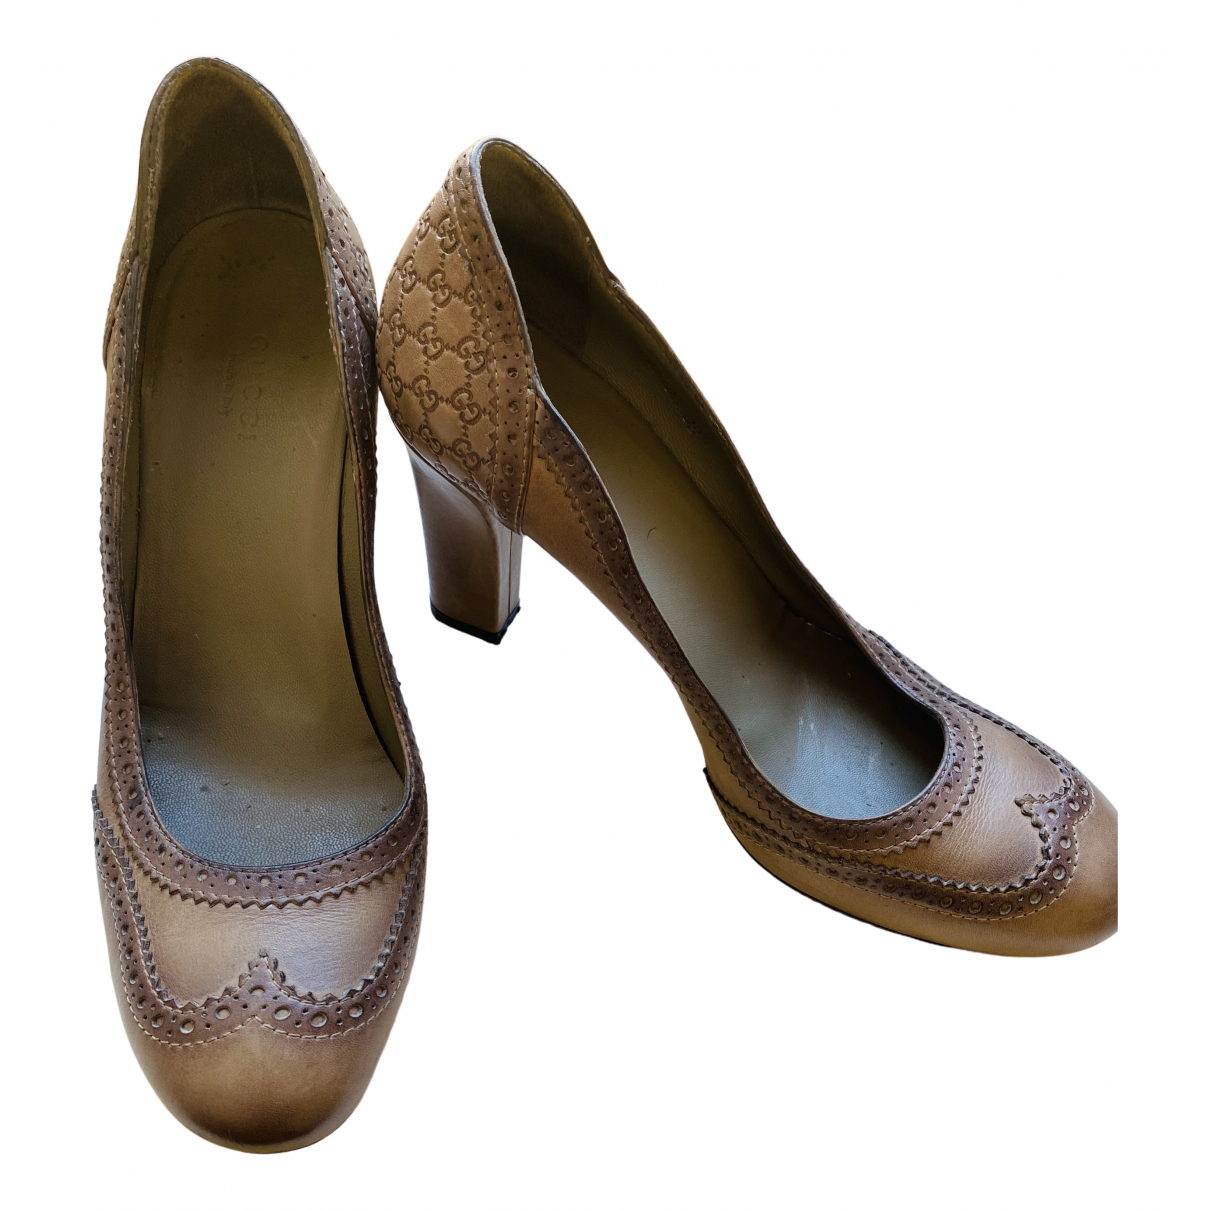 Gucci \N Pumps in  Beige Leder